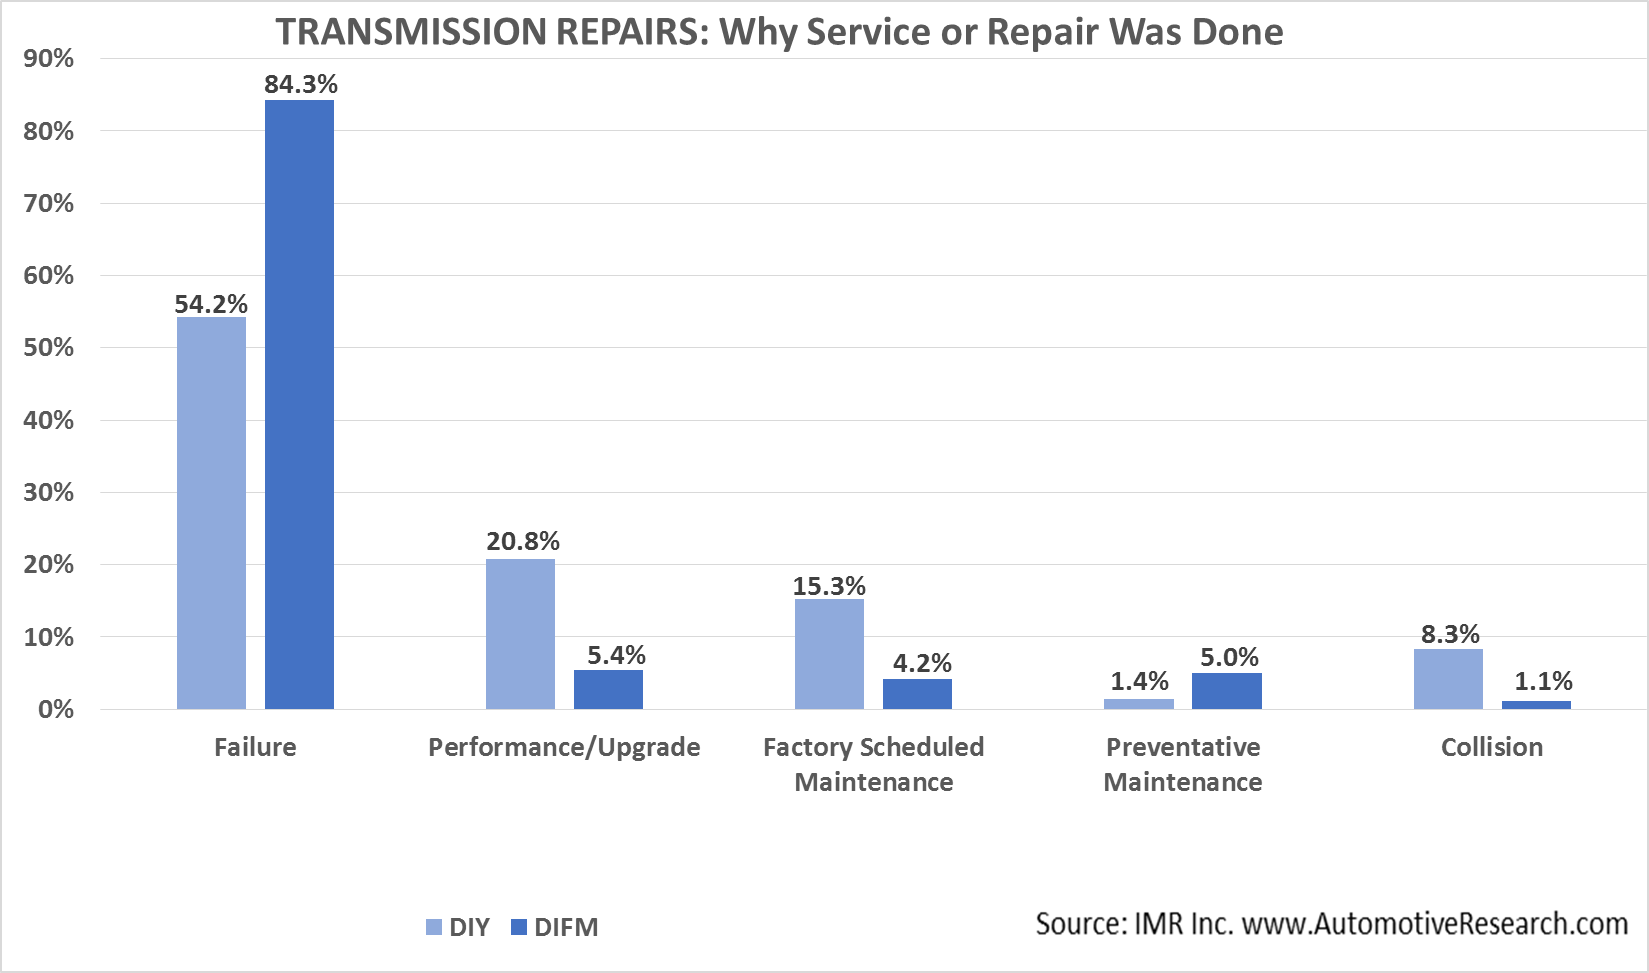 IMR Transmission--Why Service or Repair Was Done